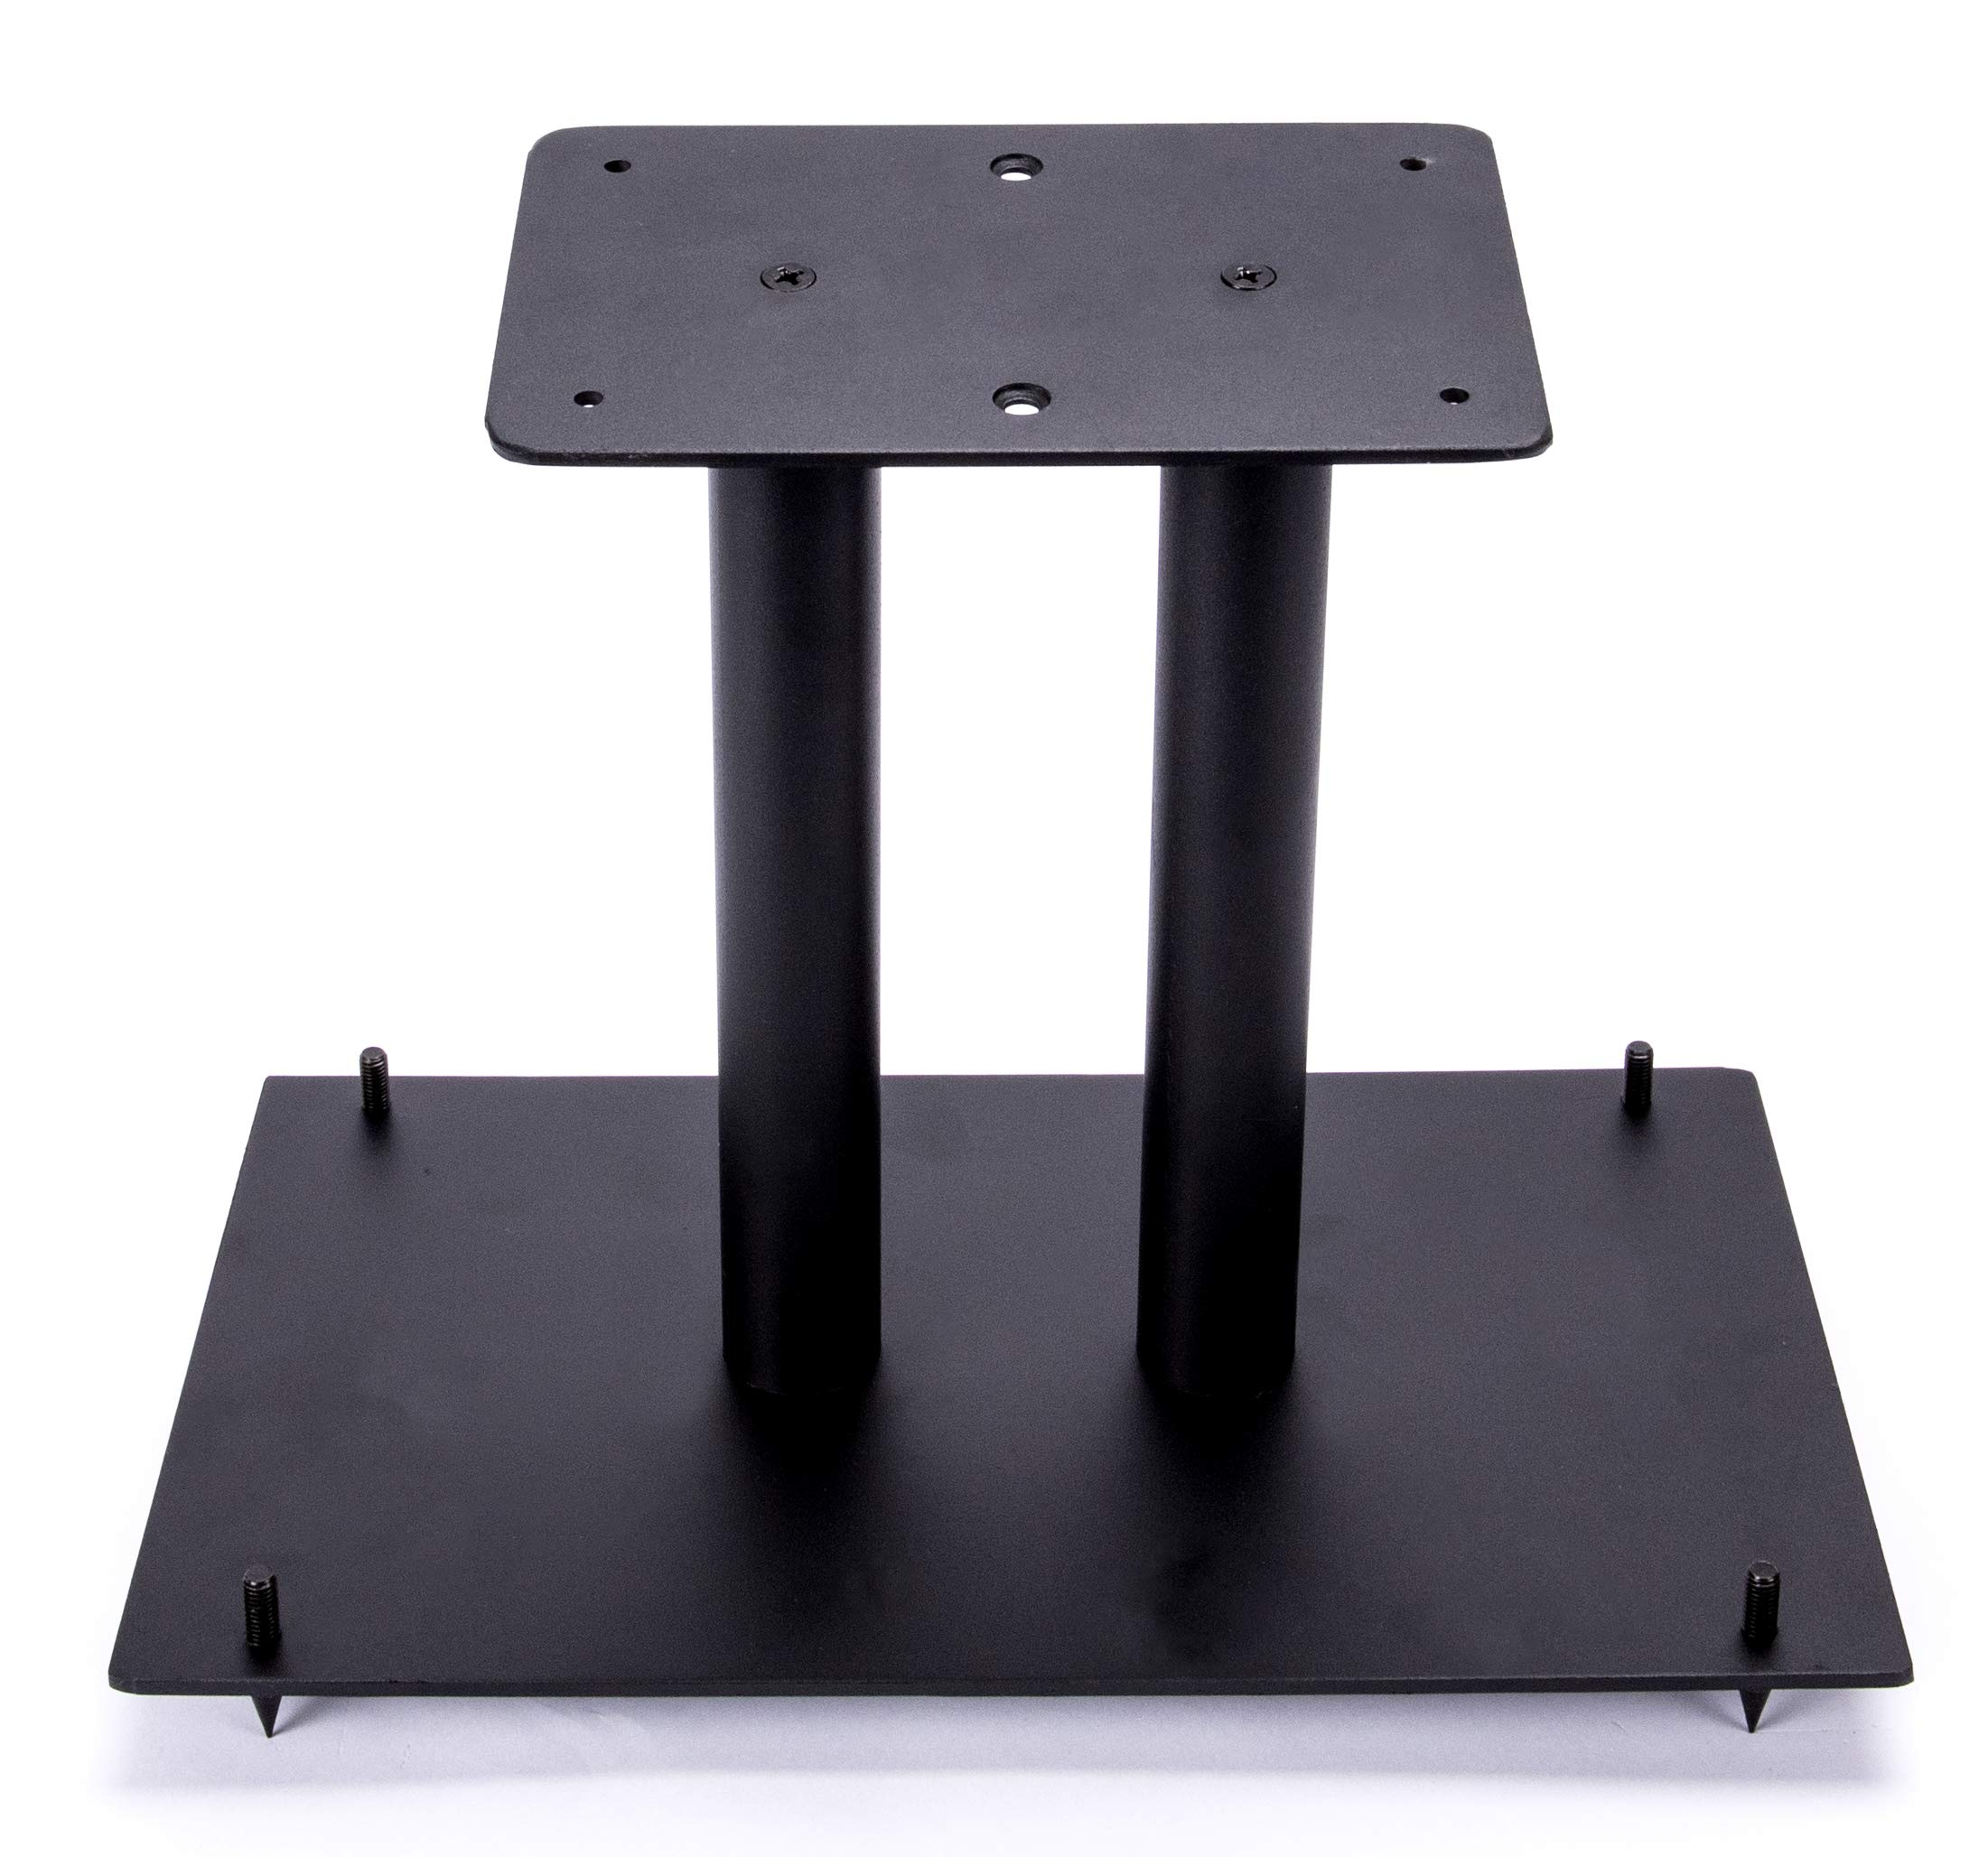 13'' Heavy Duty, Steel Center Channel Speaker Stand | Fillable | For Medium to Large Speakers | Comes with Steel Carpet Spikes | By Vega A/V Systems | 15.5'' x 9.5'' Base, 5.5'' x 9'' Speaker Pedestal by Steel Made